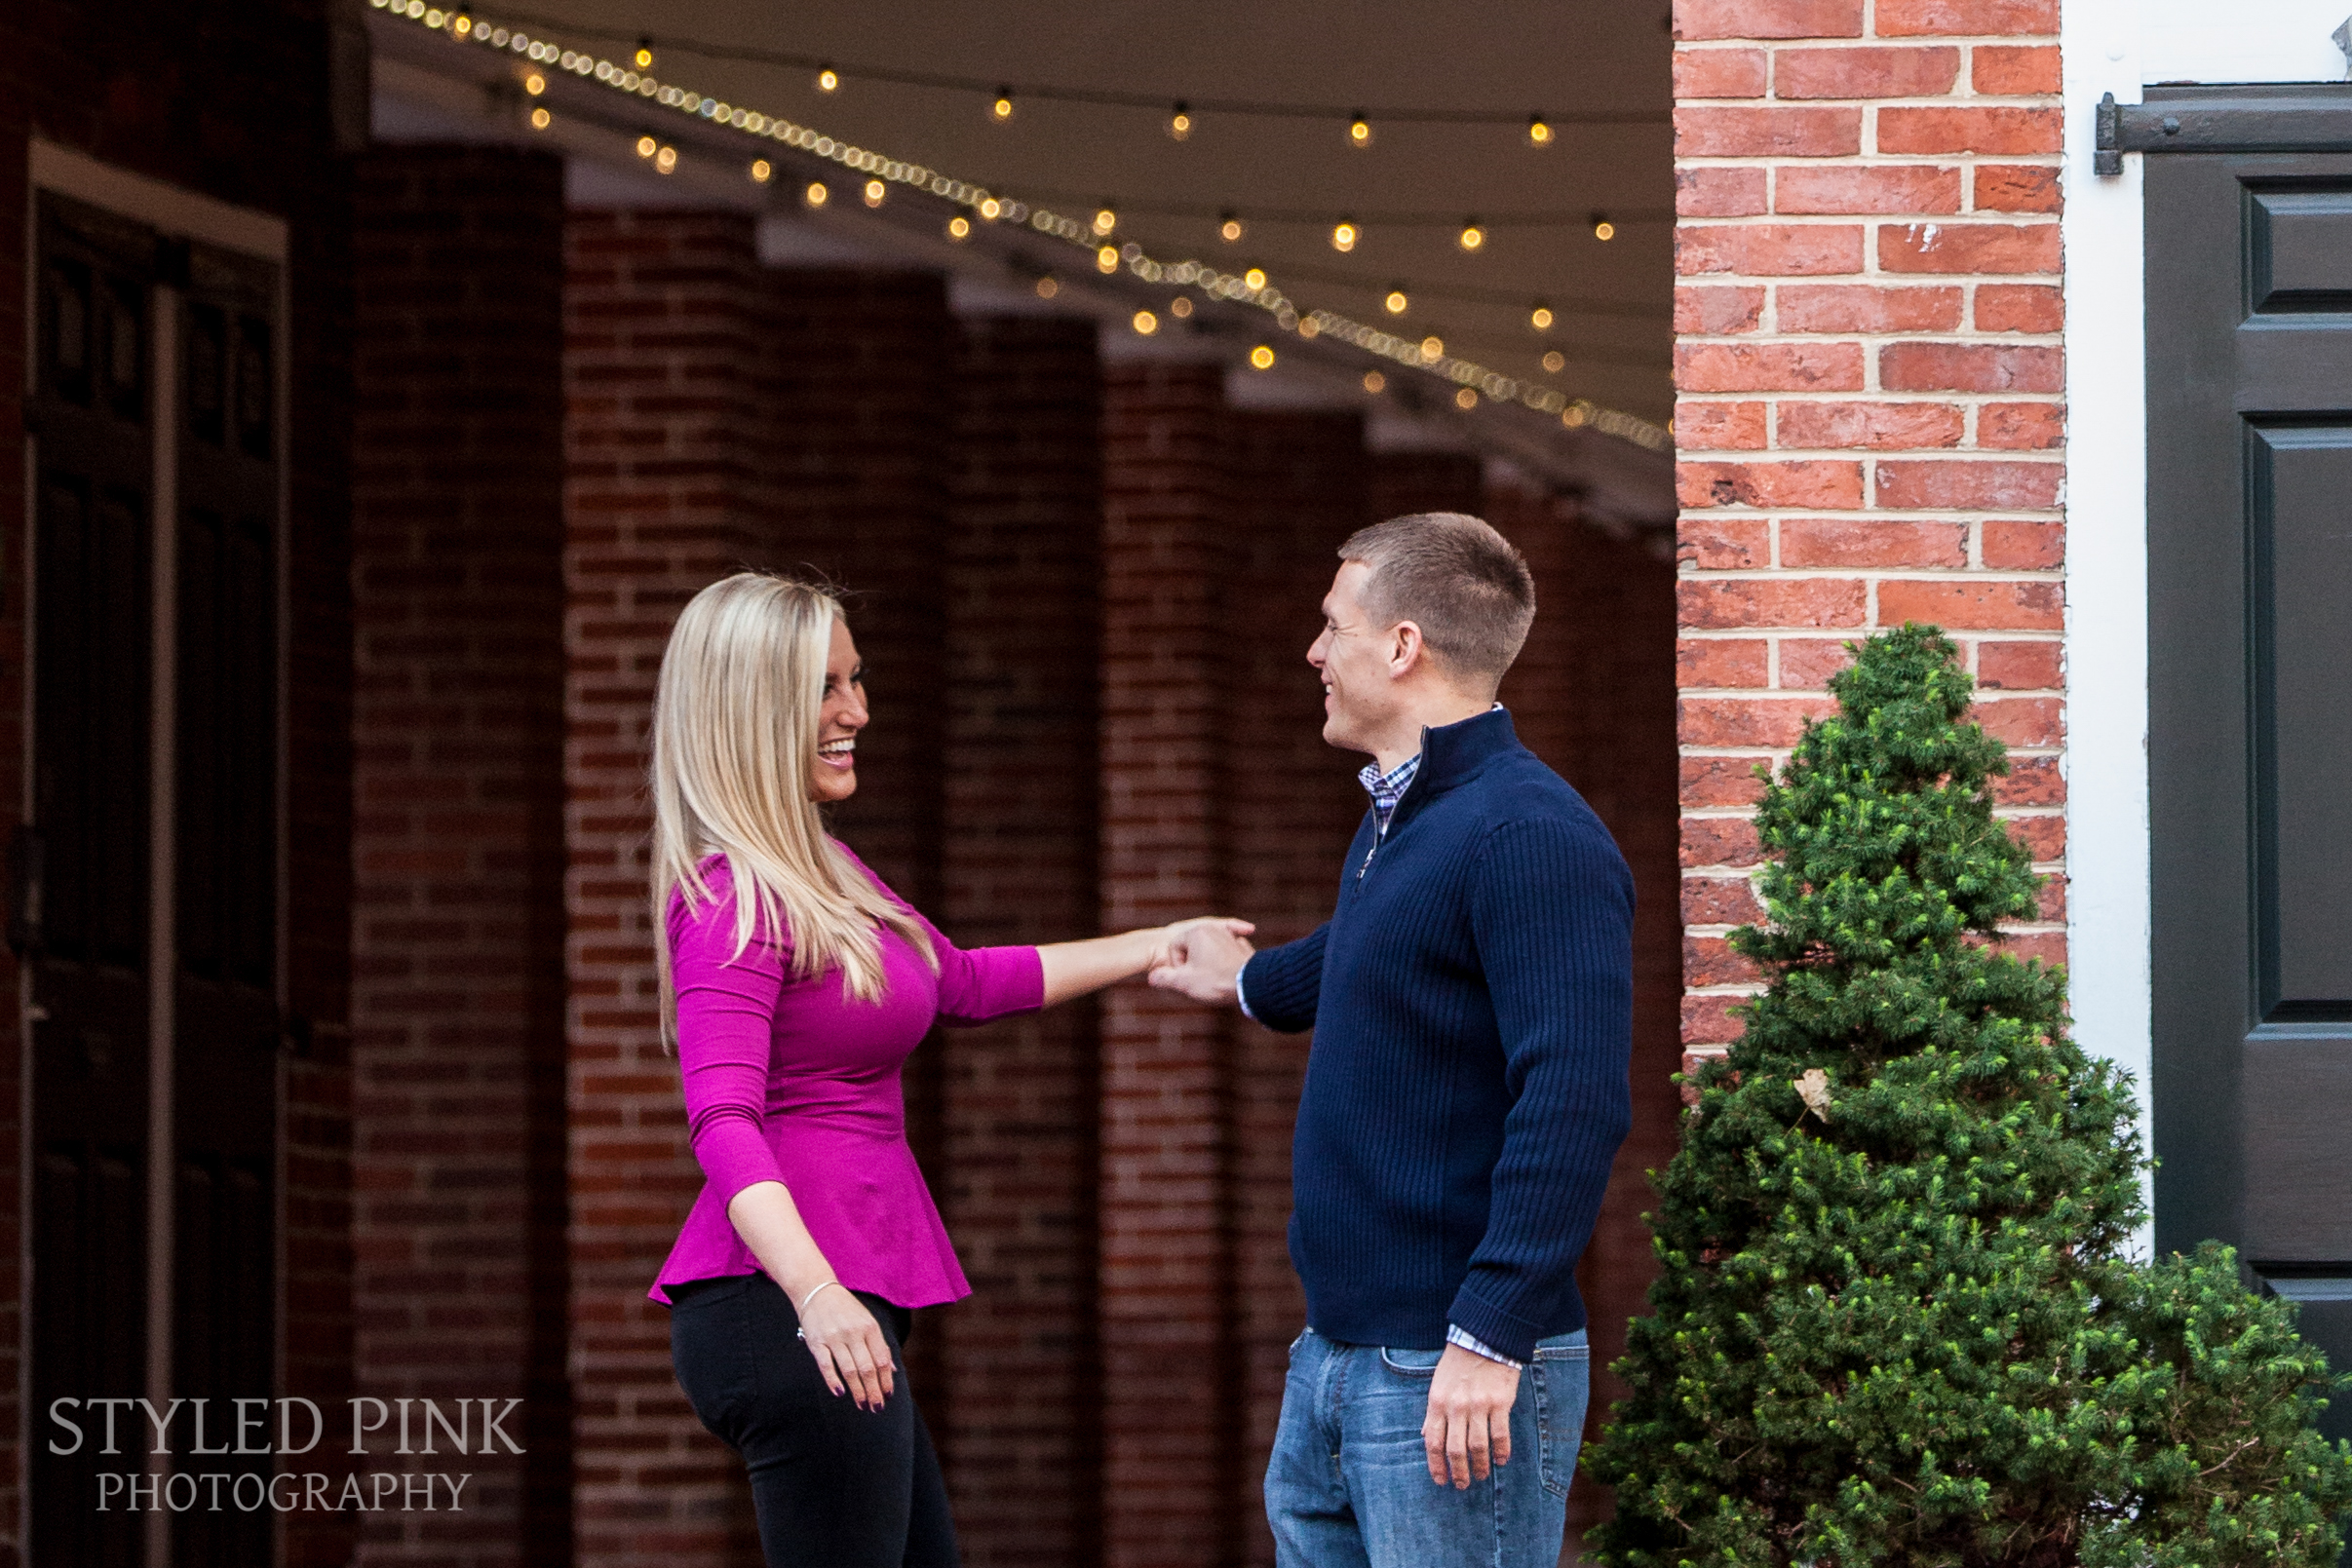 styled-pink-photography-penns-landing-engagement-11